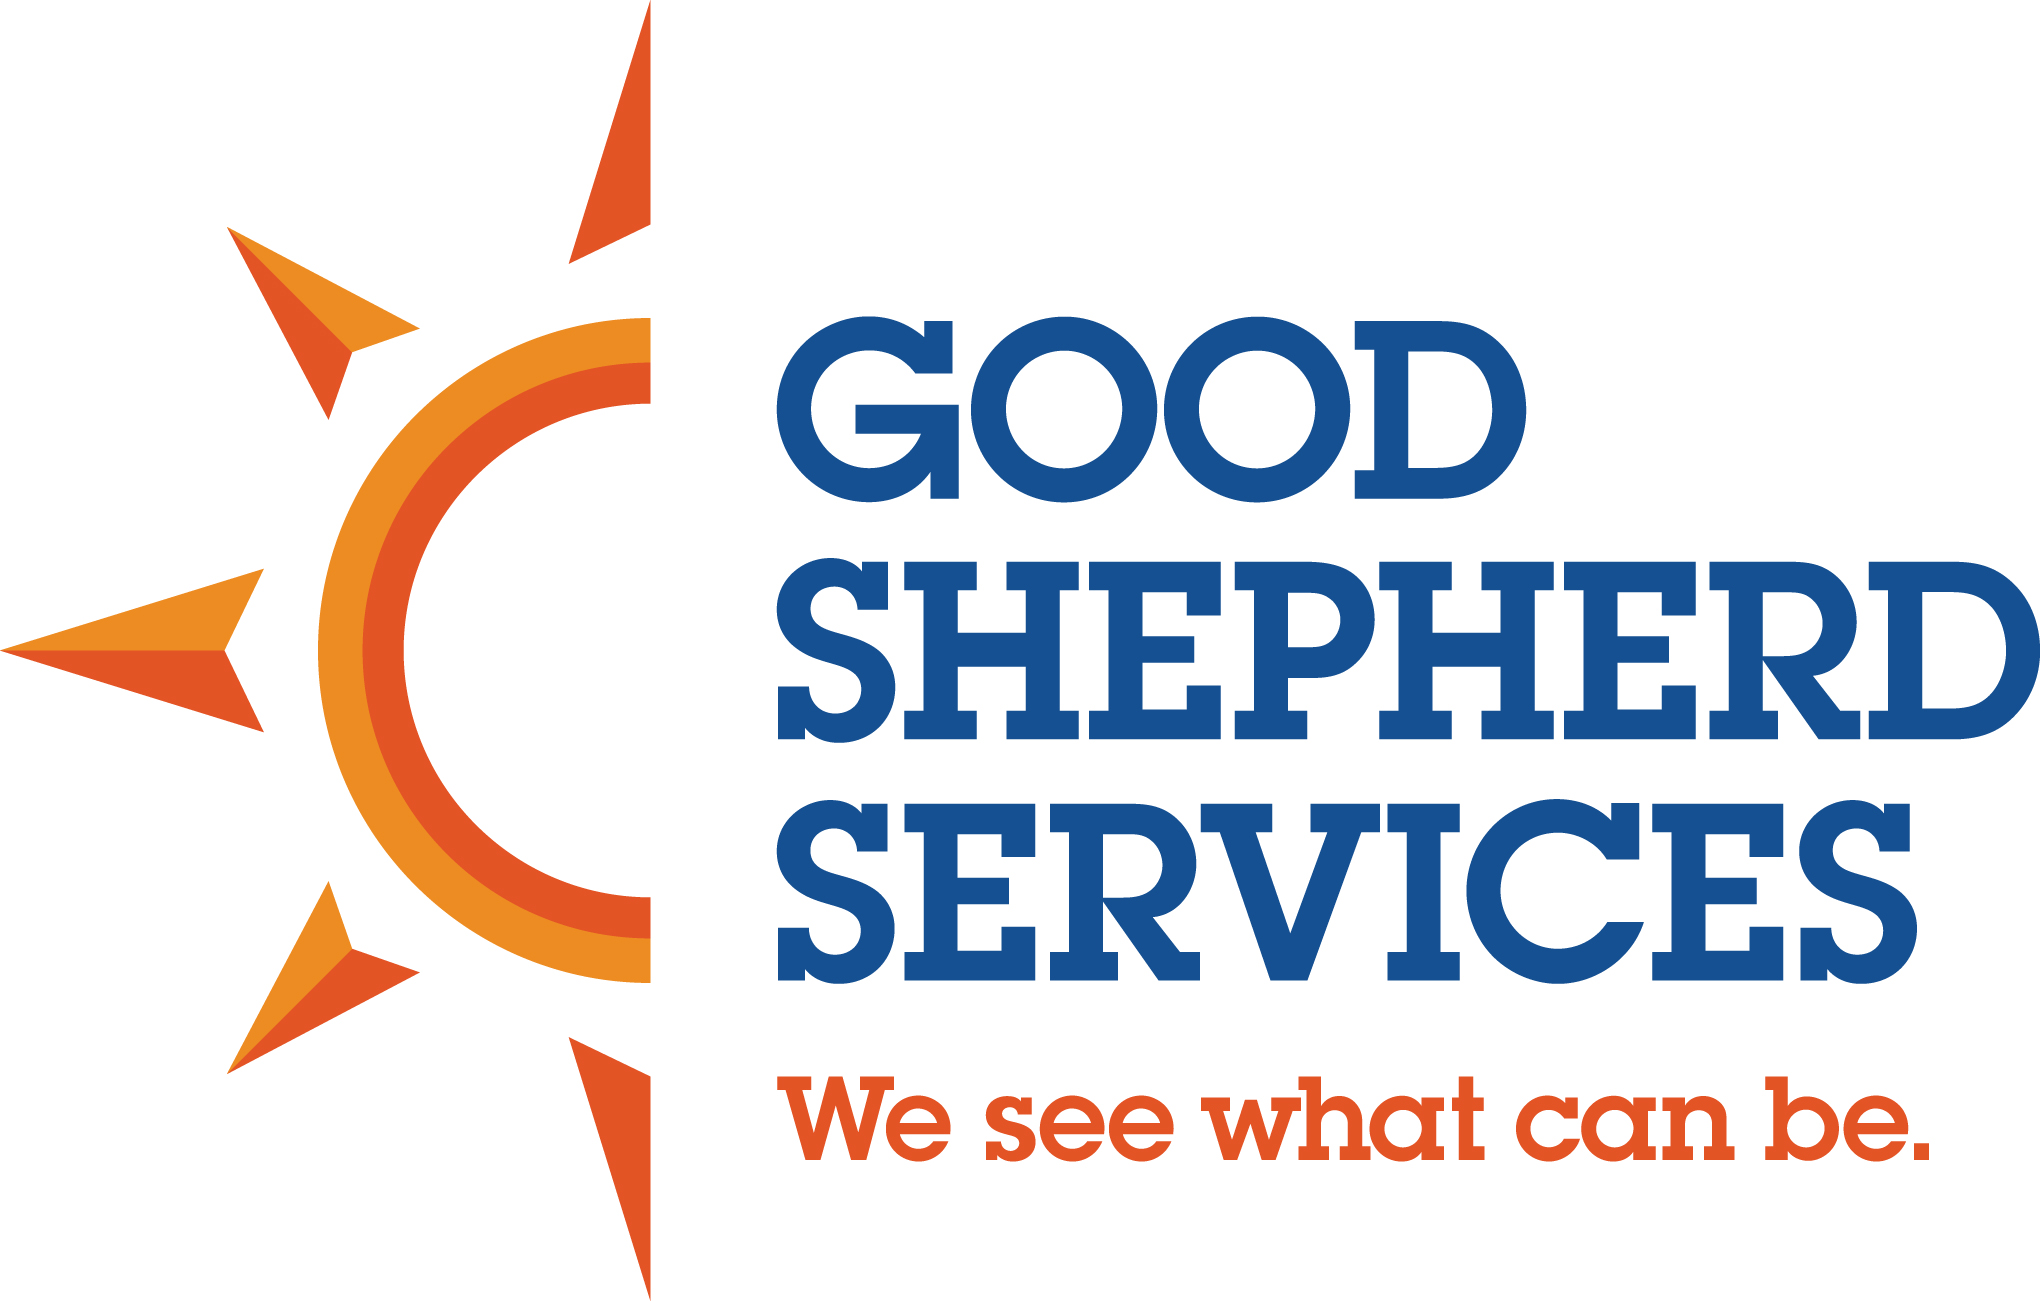 Good Shepherd Services 's logo